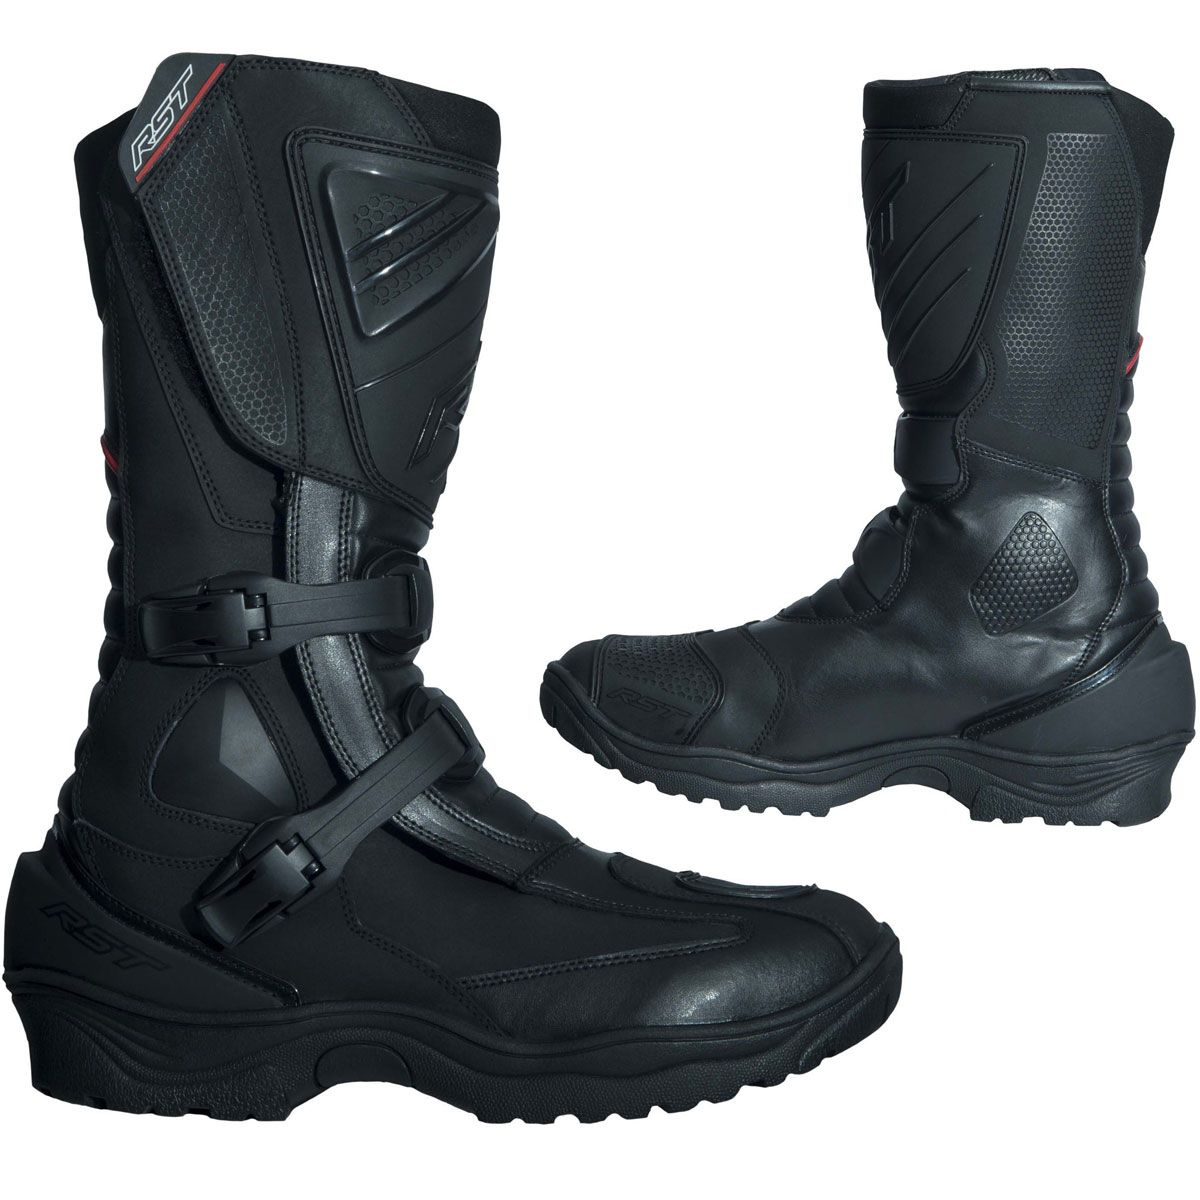 RST Adventure II CE WP Boots Black